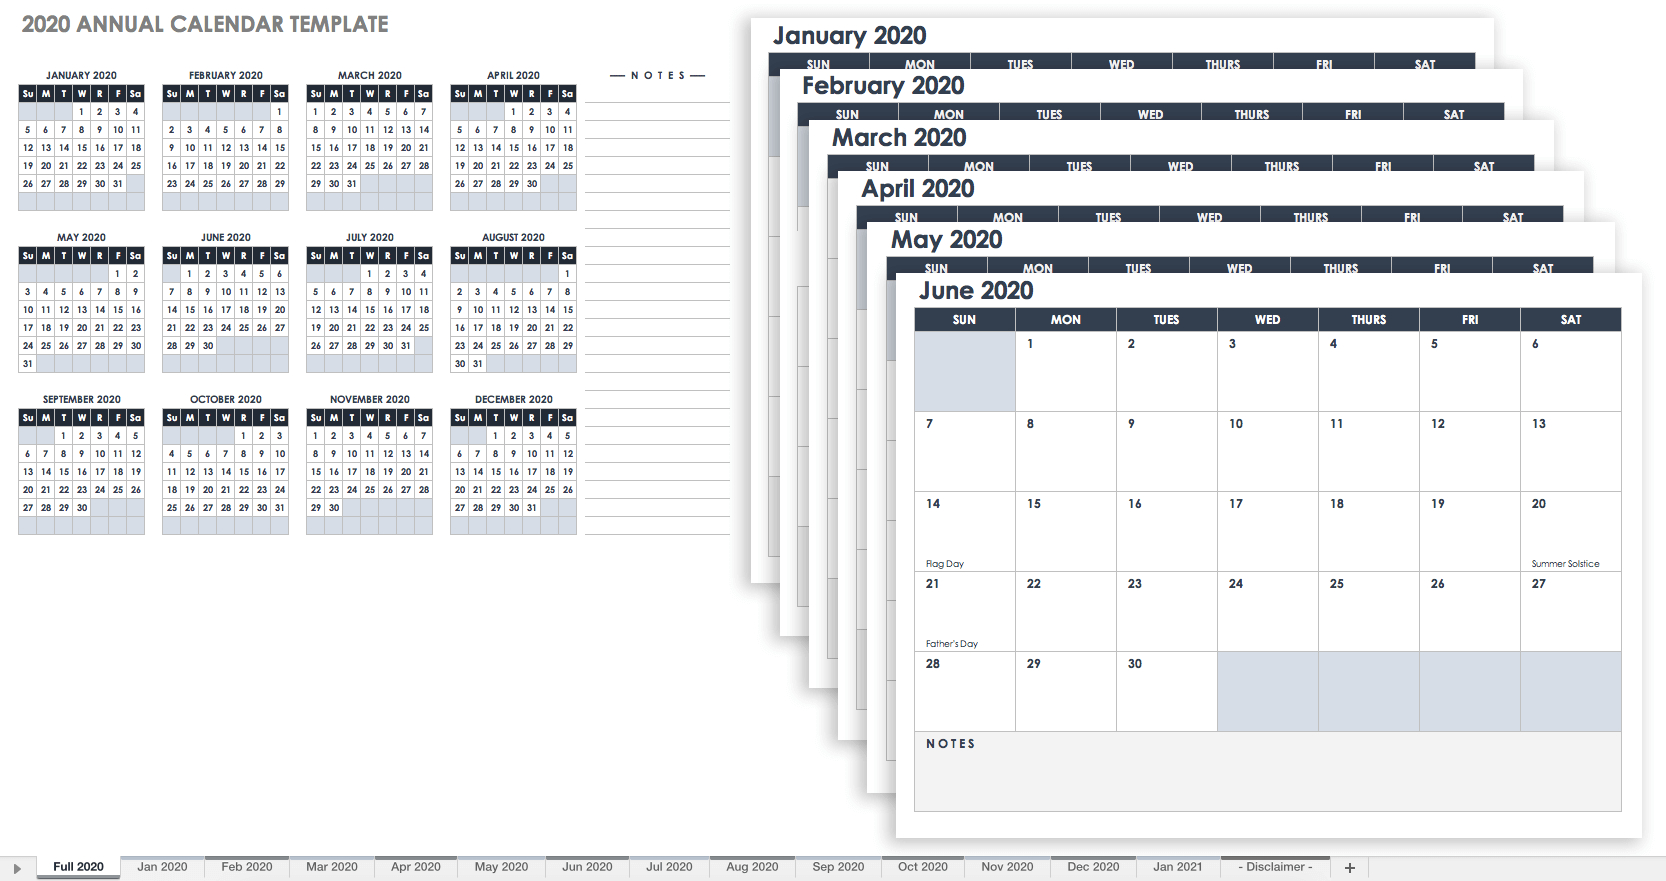 Free, Printable Excel Calendar Templates For 2019 & On | Smartsheet within 3 Month Printable Calendar Template